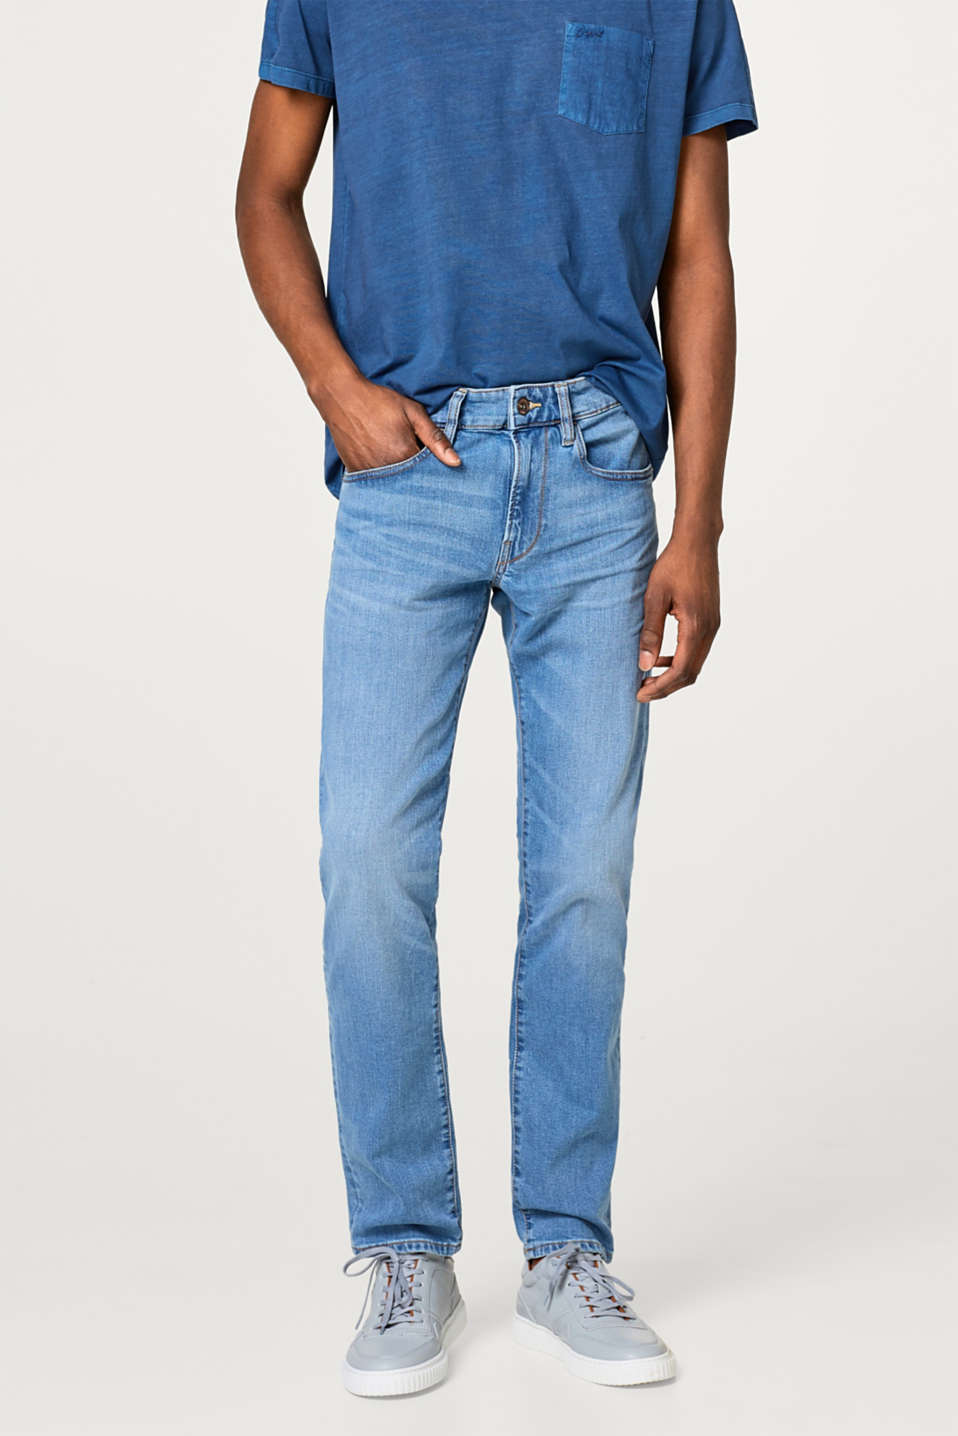 Esprit - Bright stretch jeans in a light wash